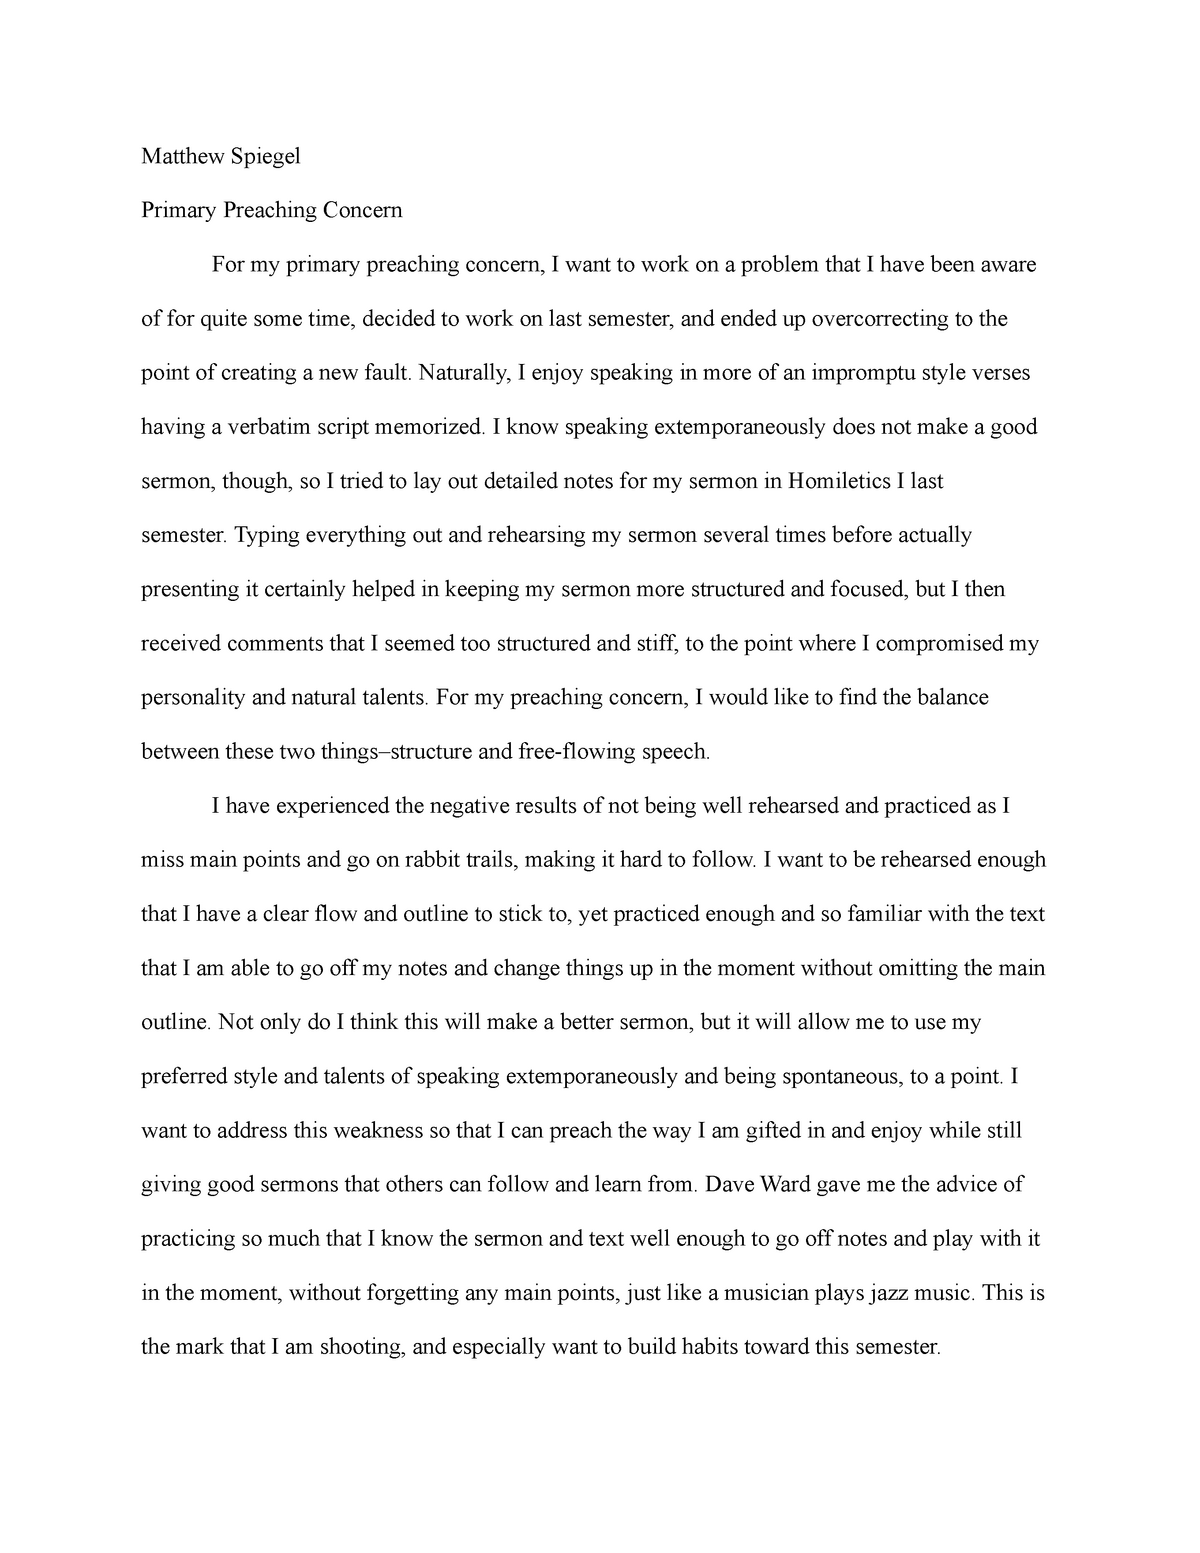 Primary Preaching Concern Paper - YTH-366: Preaching to Youth - StuDocu